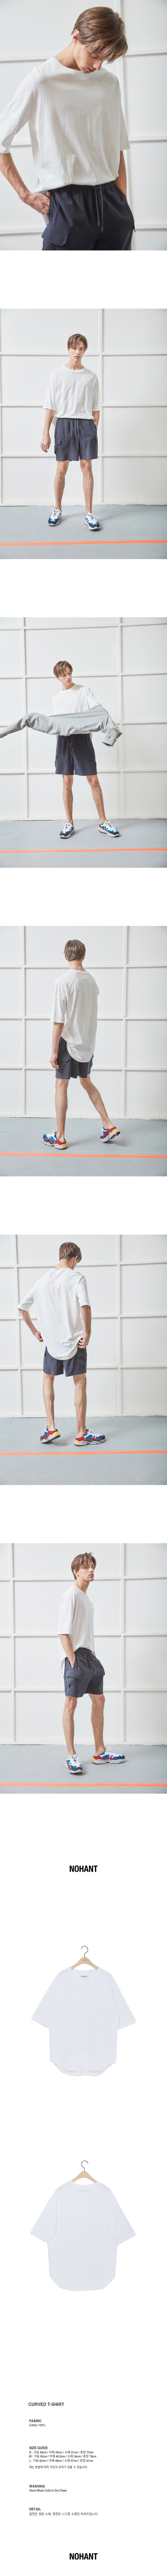 노앙(NOHANT) CURVED T-SHIRT WHITE